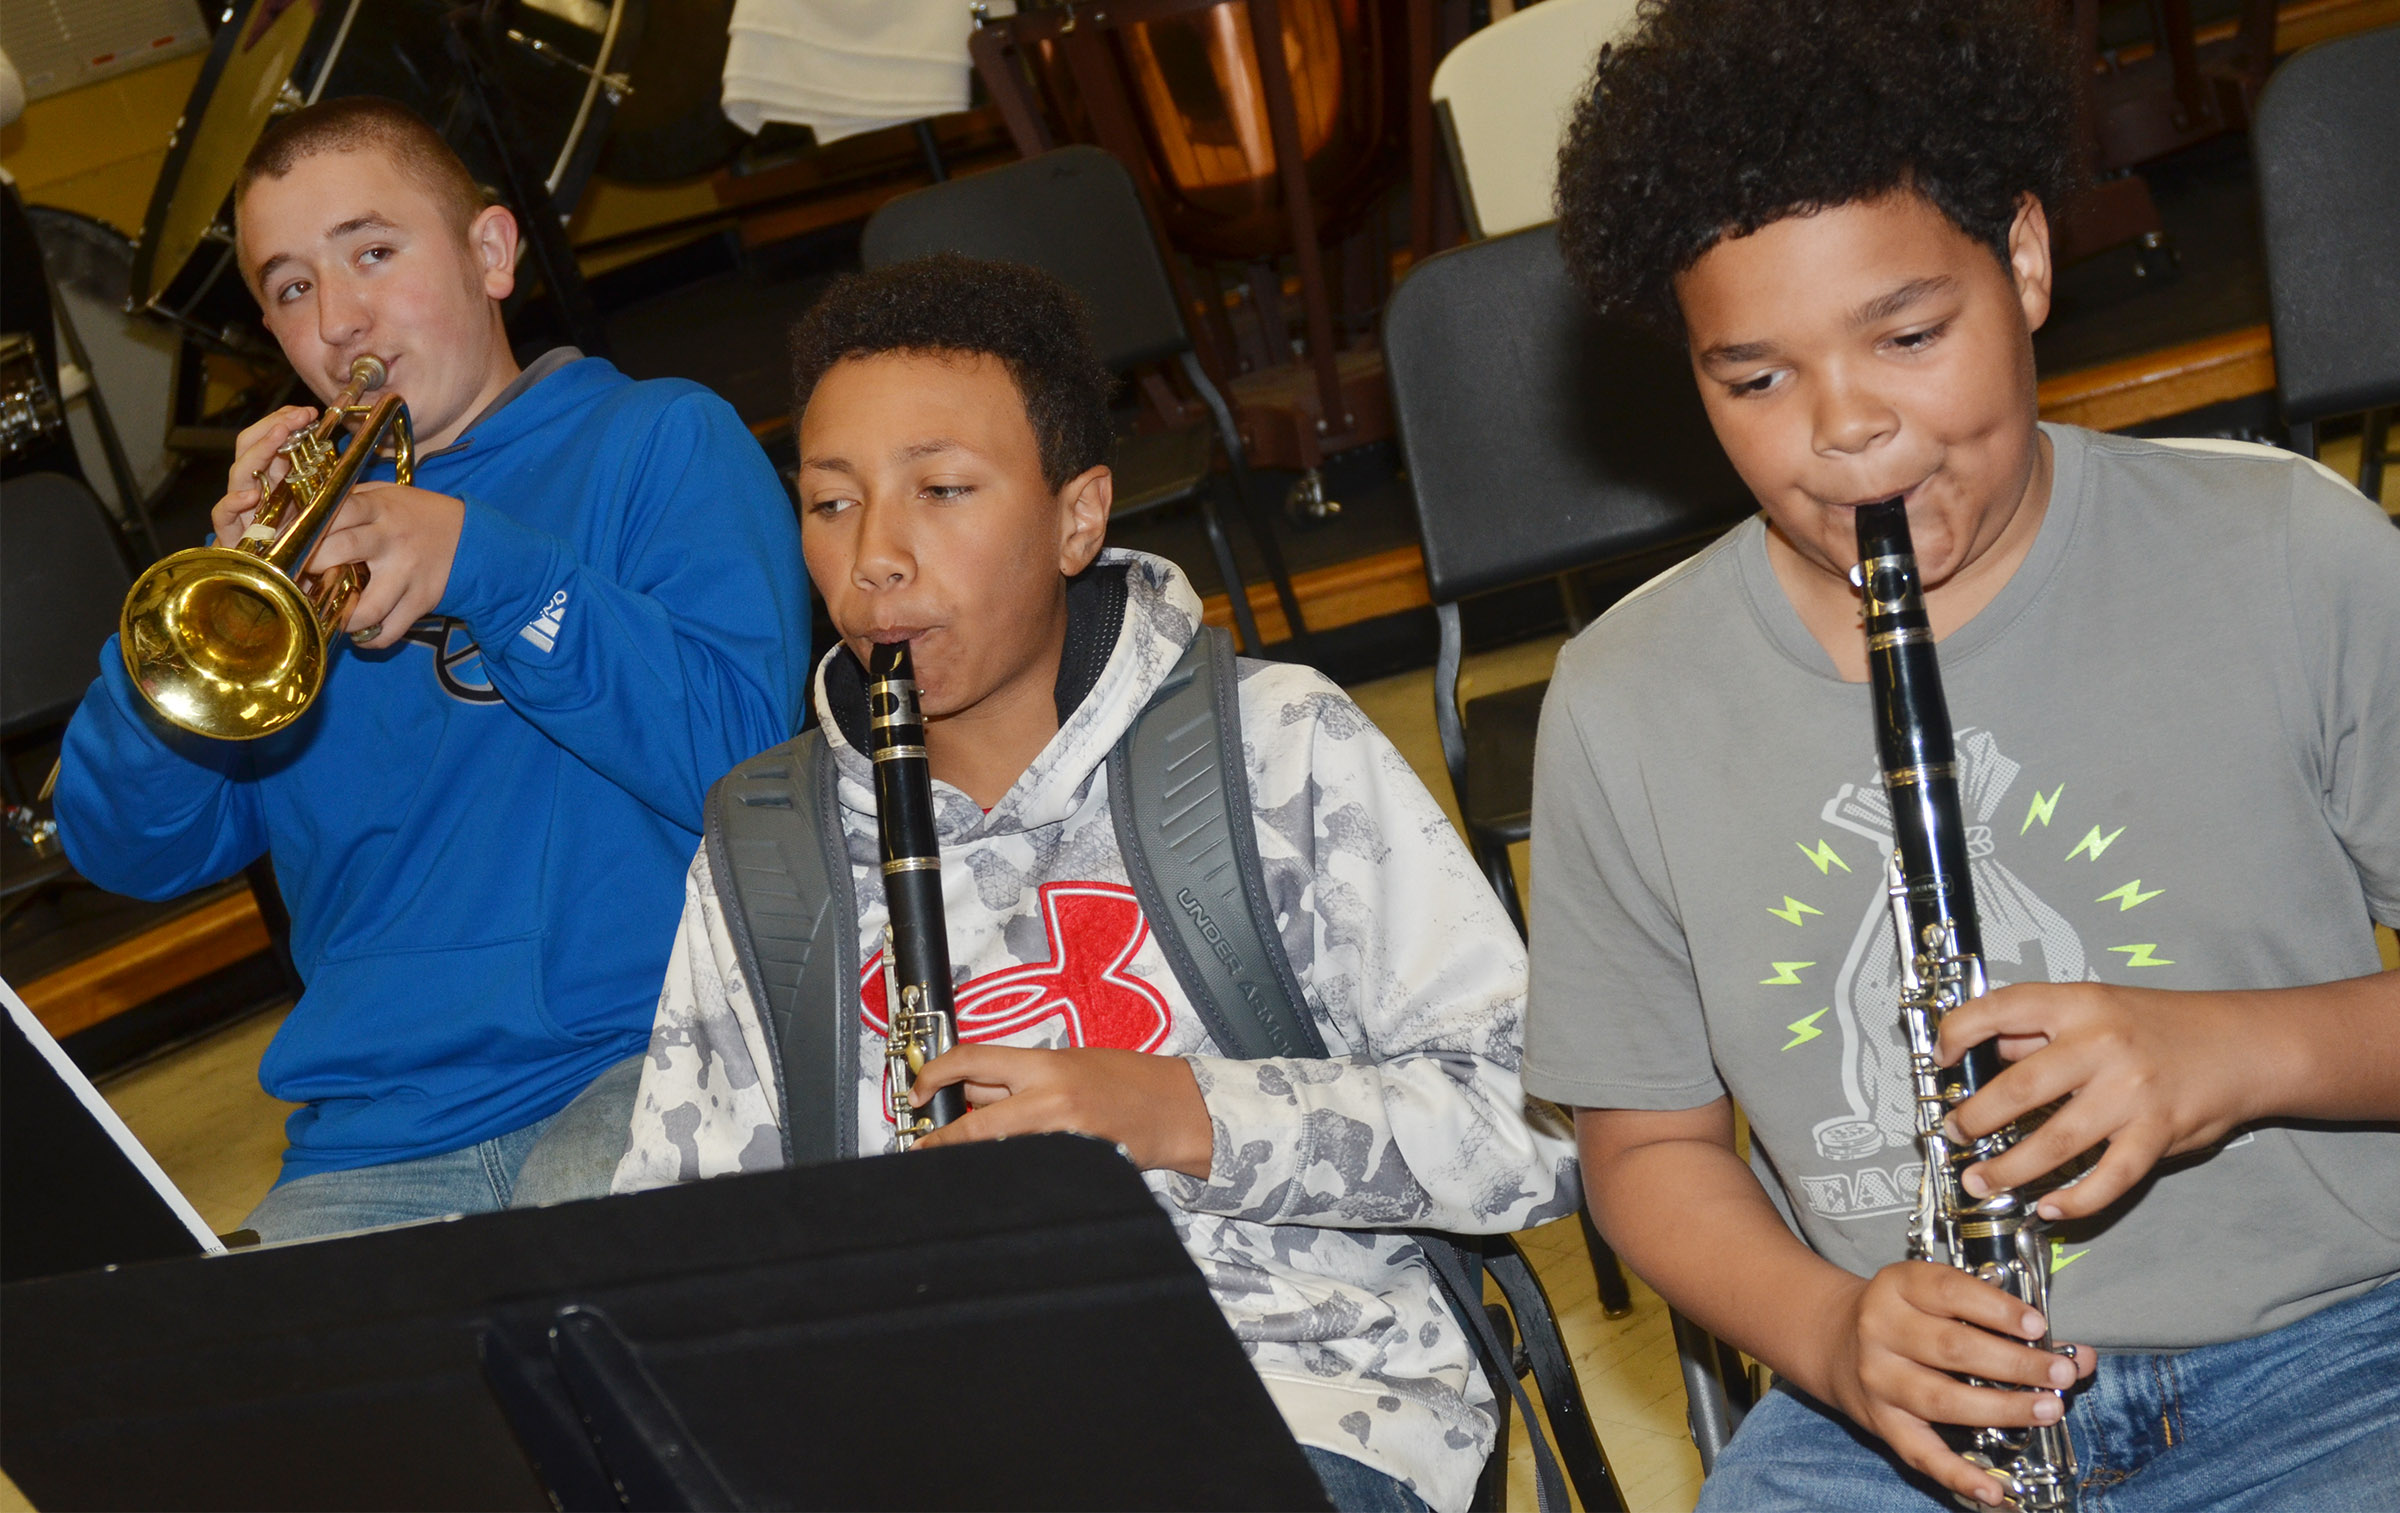 From left, CMS seventh-grader Zachary Shaw plays trumpet and eighth-graders Jastyn Shively and Alex Lofton play clarinet.